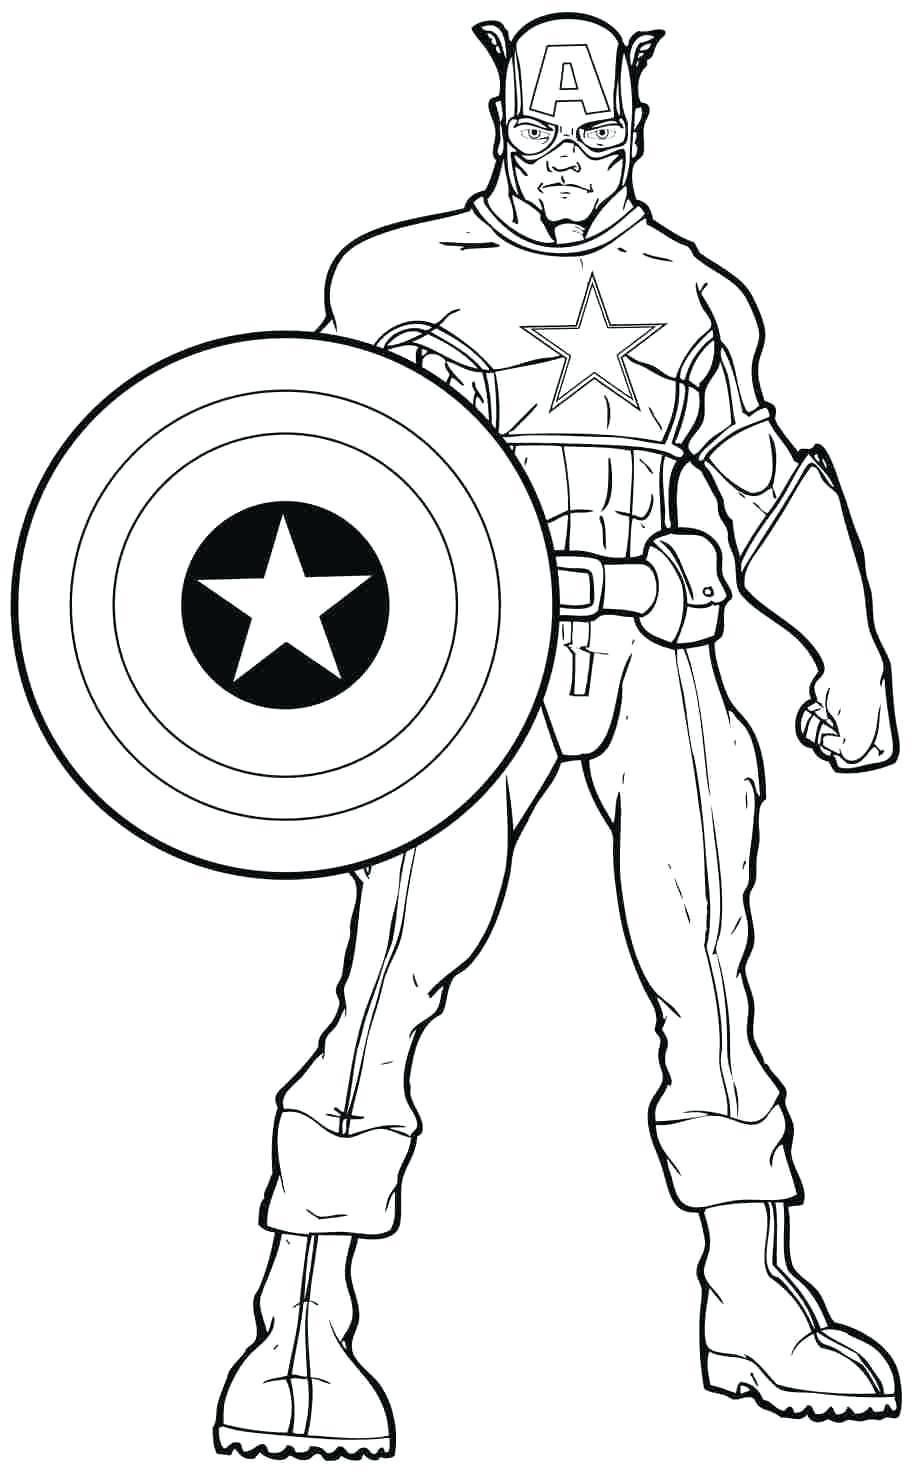 Awesome Coloring Page Superhero That You Must Know You Re In Good